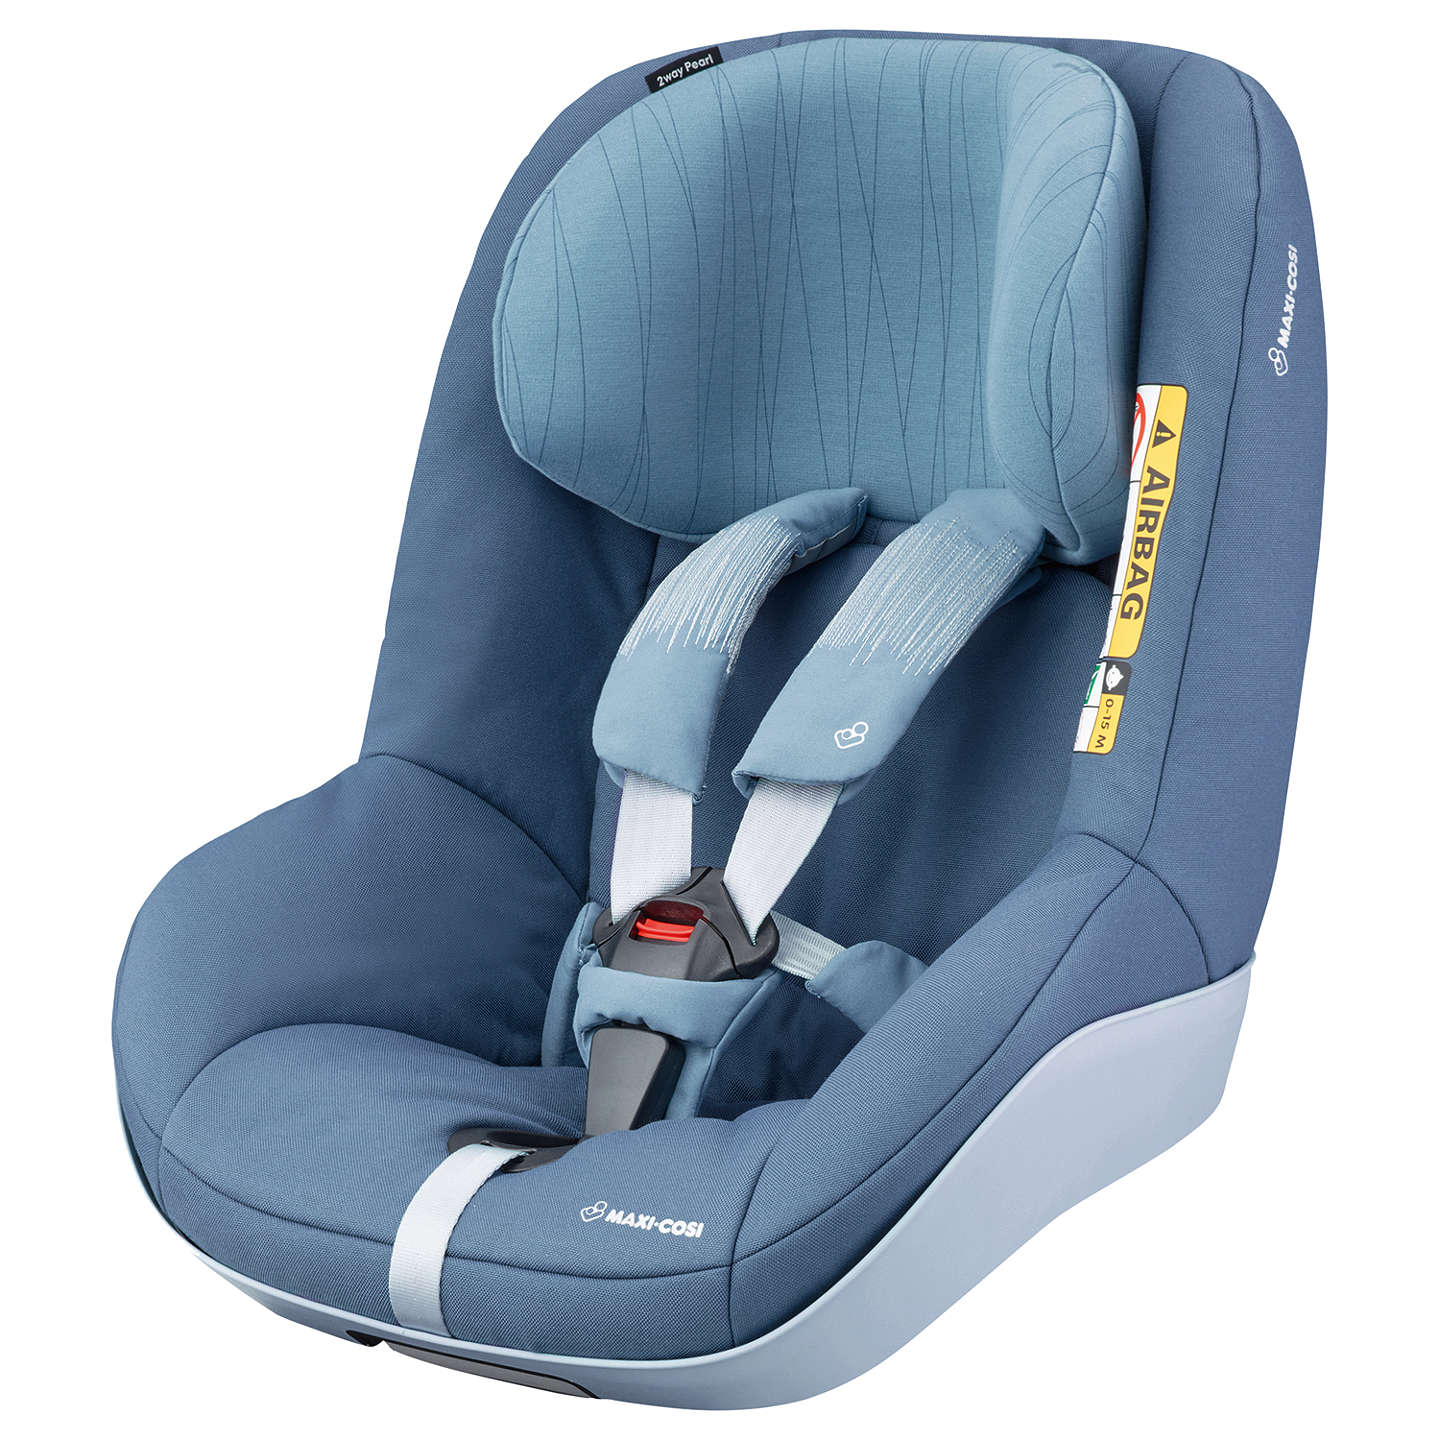 Maxi-Cosi 2wayPearl i-Size Group 1 Car Seat, Frequency Blue at John ...